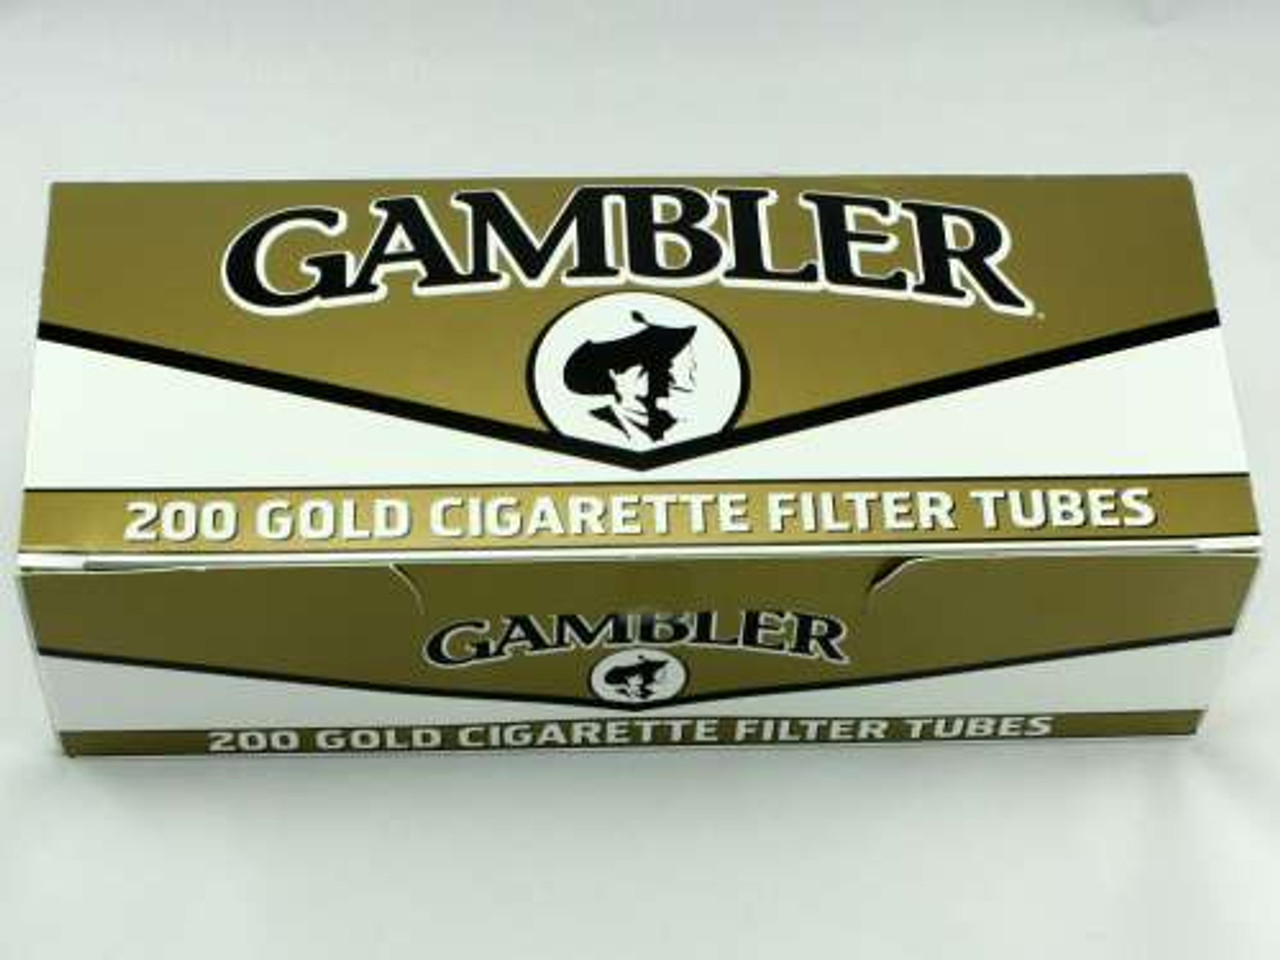 Gambler Light King Size Cigarette Tubes